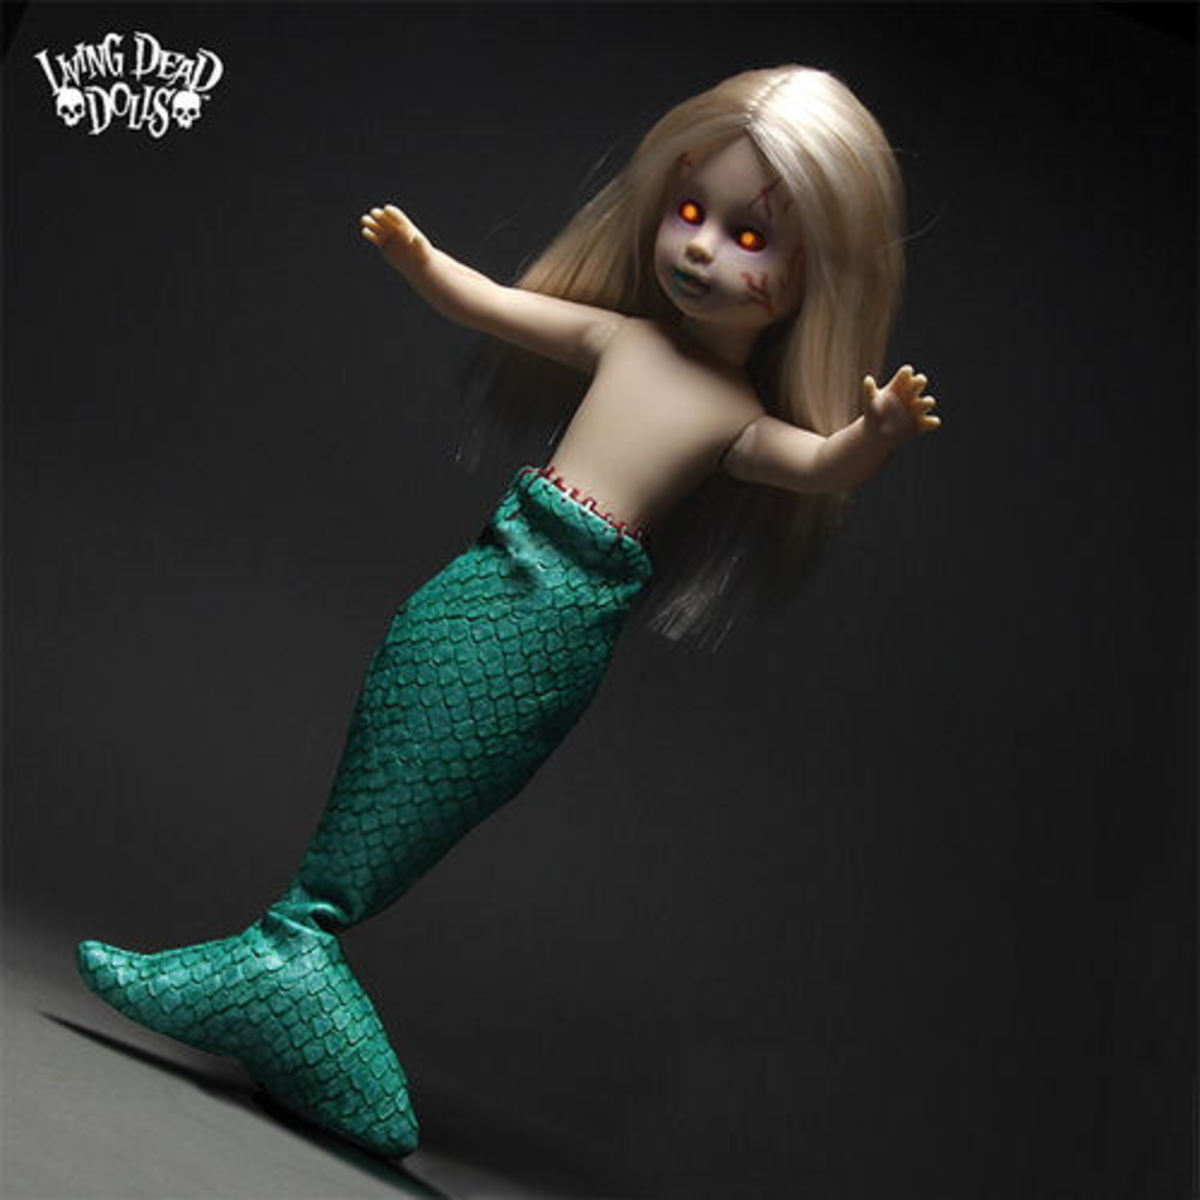 panenka LIVING DEAD DOLLS - Feejee Mermaid - MEZ93330-3